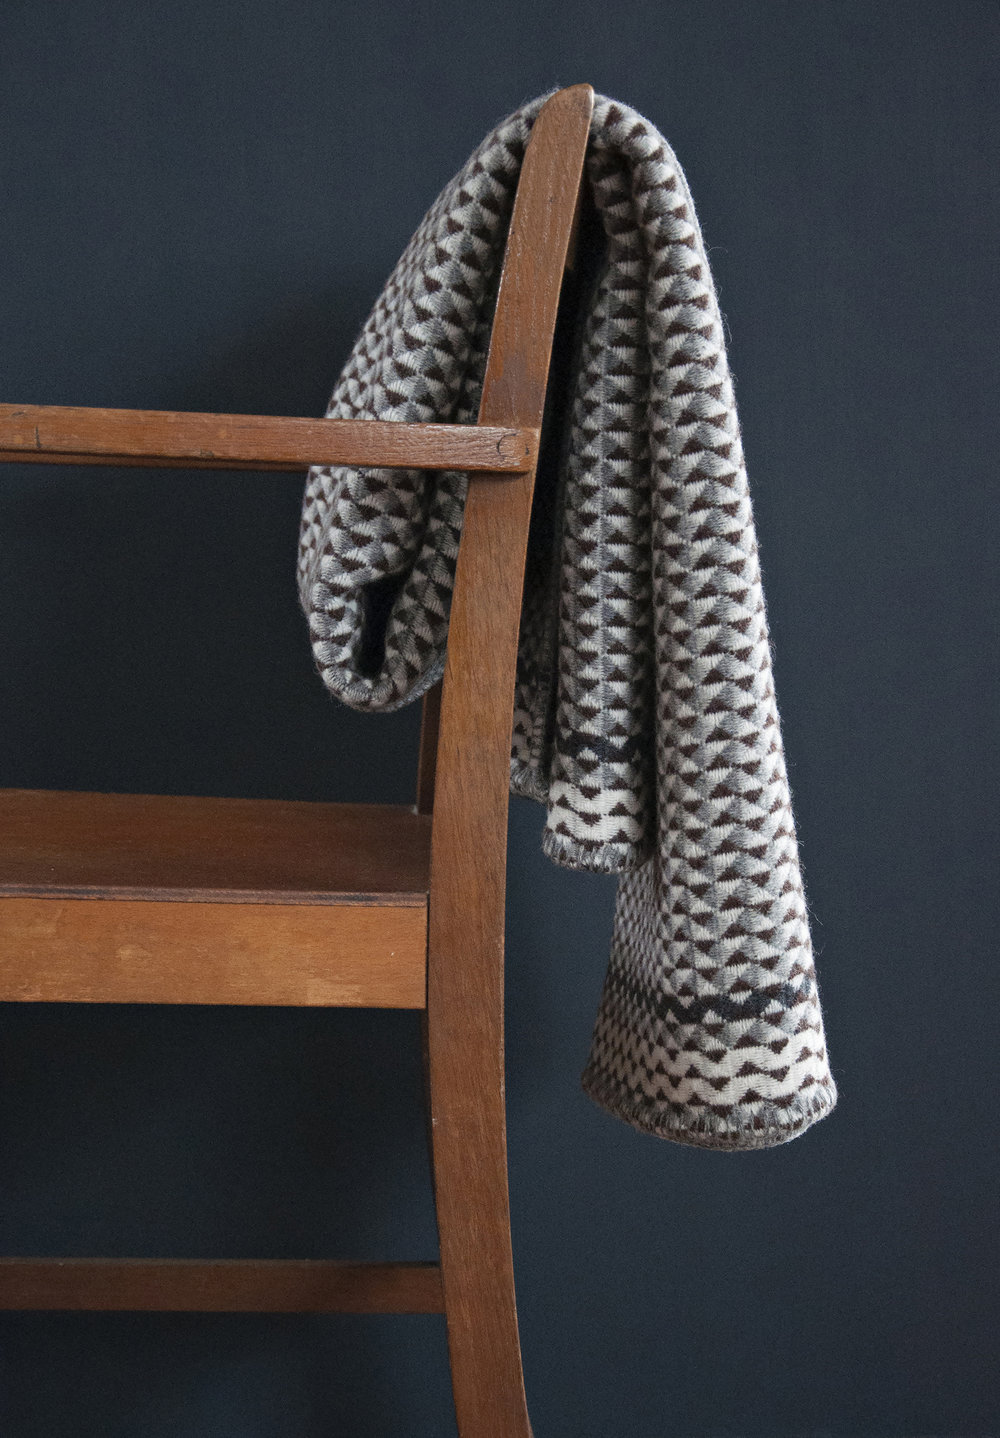 Eleanor Pritchard - Quails Egg blanket 2 - photo by Kangan Arora.jpg